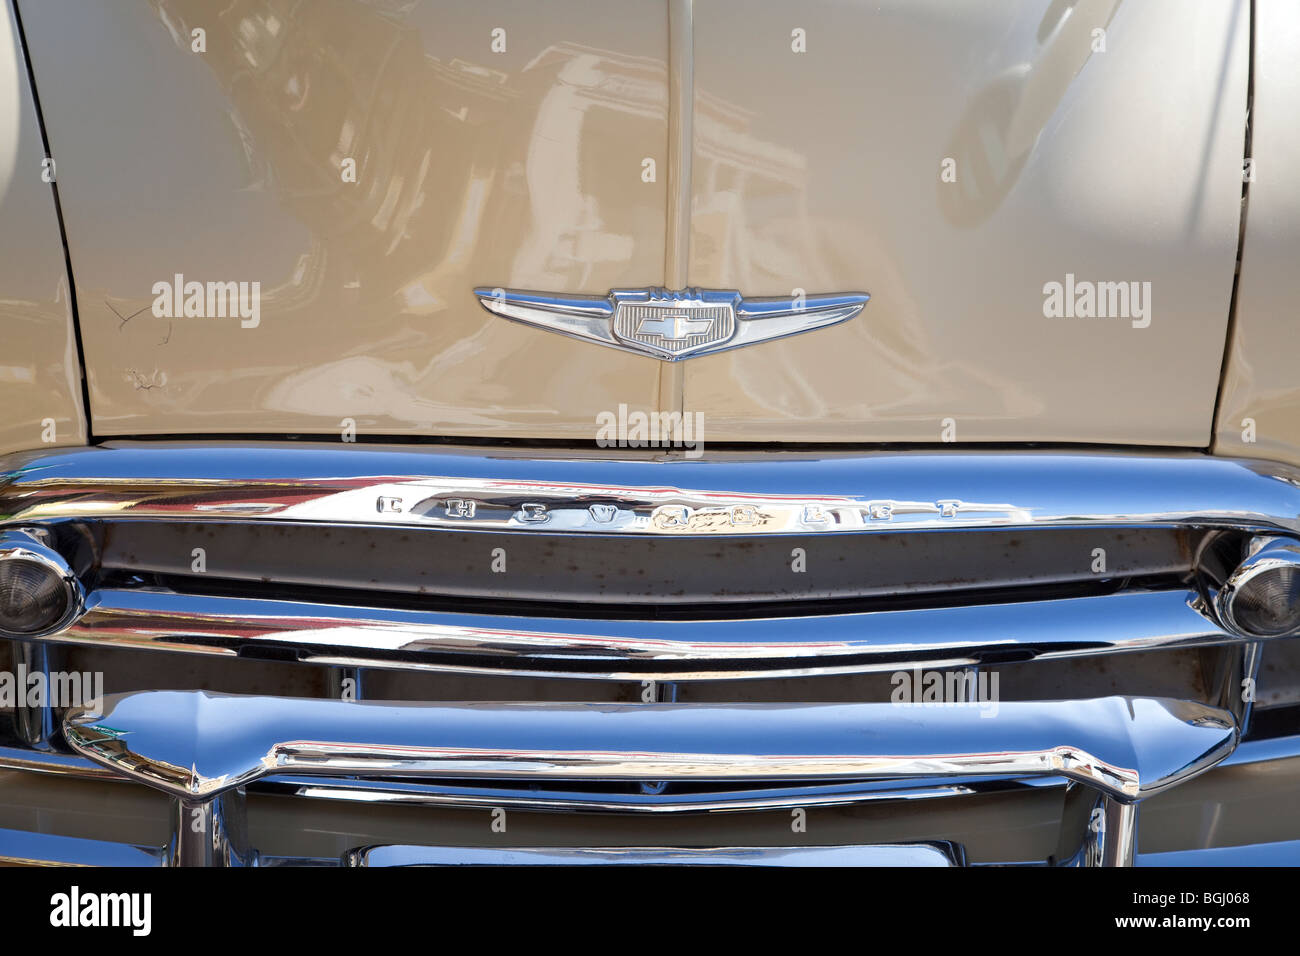 A close up detail of the front end of a 1949 Chevrolet Styleline Deluxe Convertible showing the front grill and - Stock Image